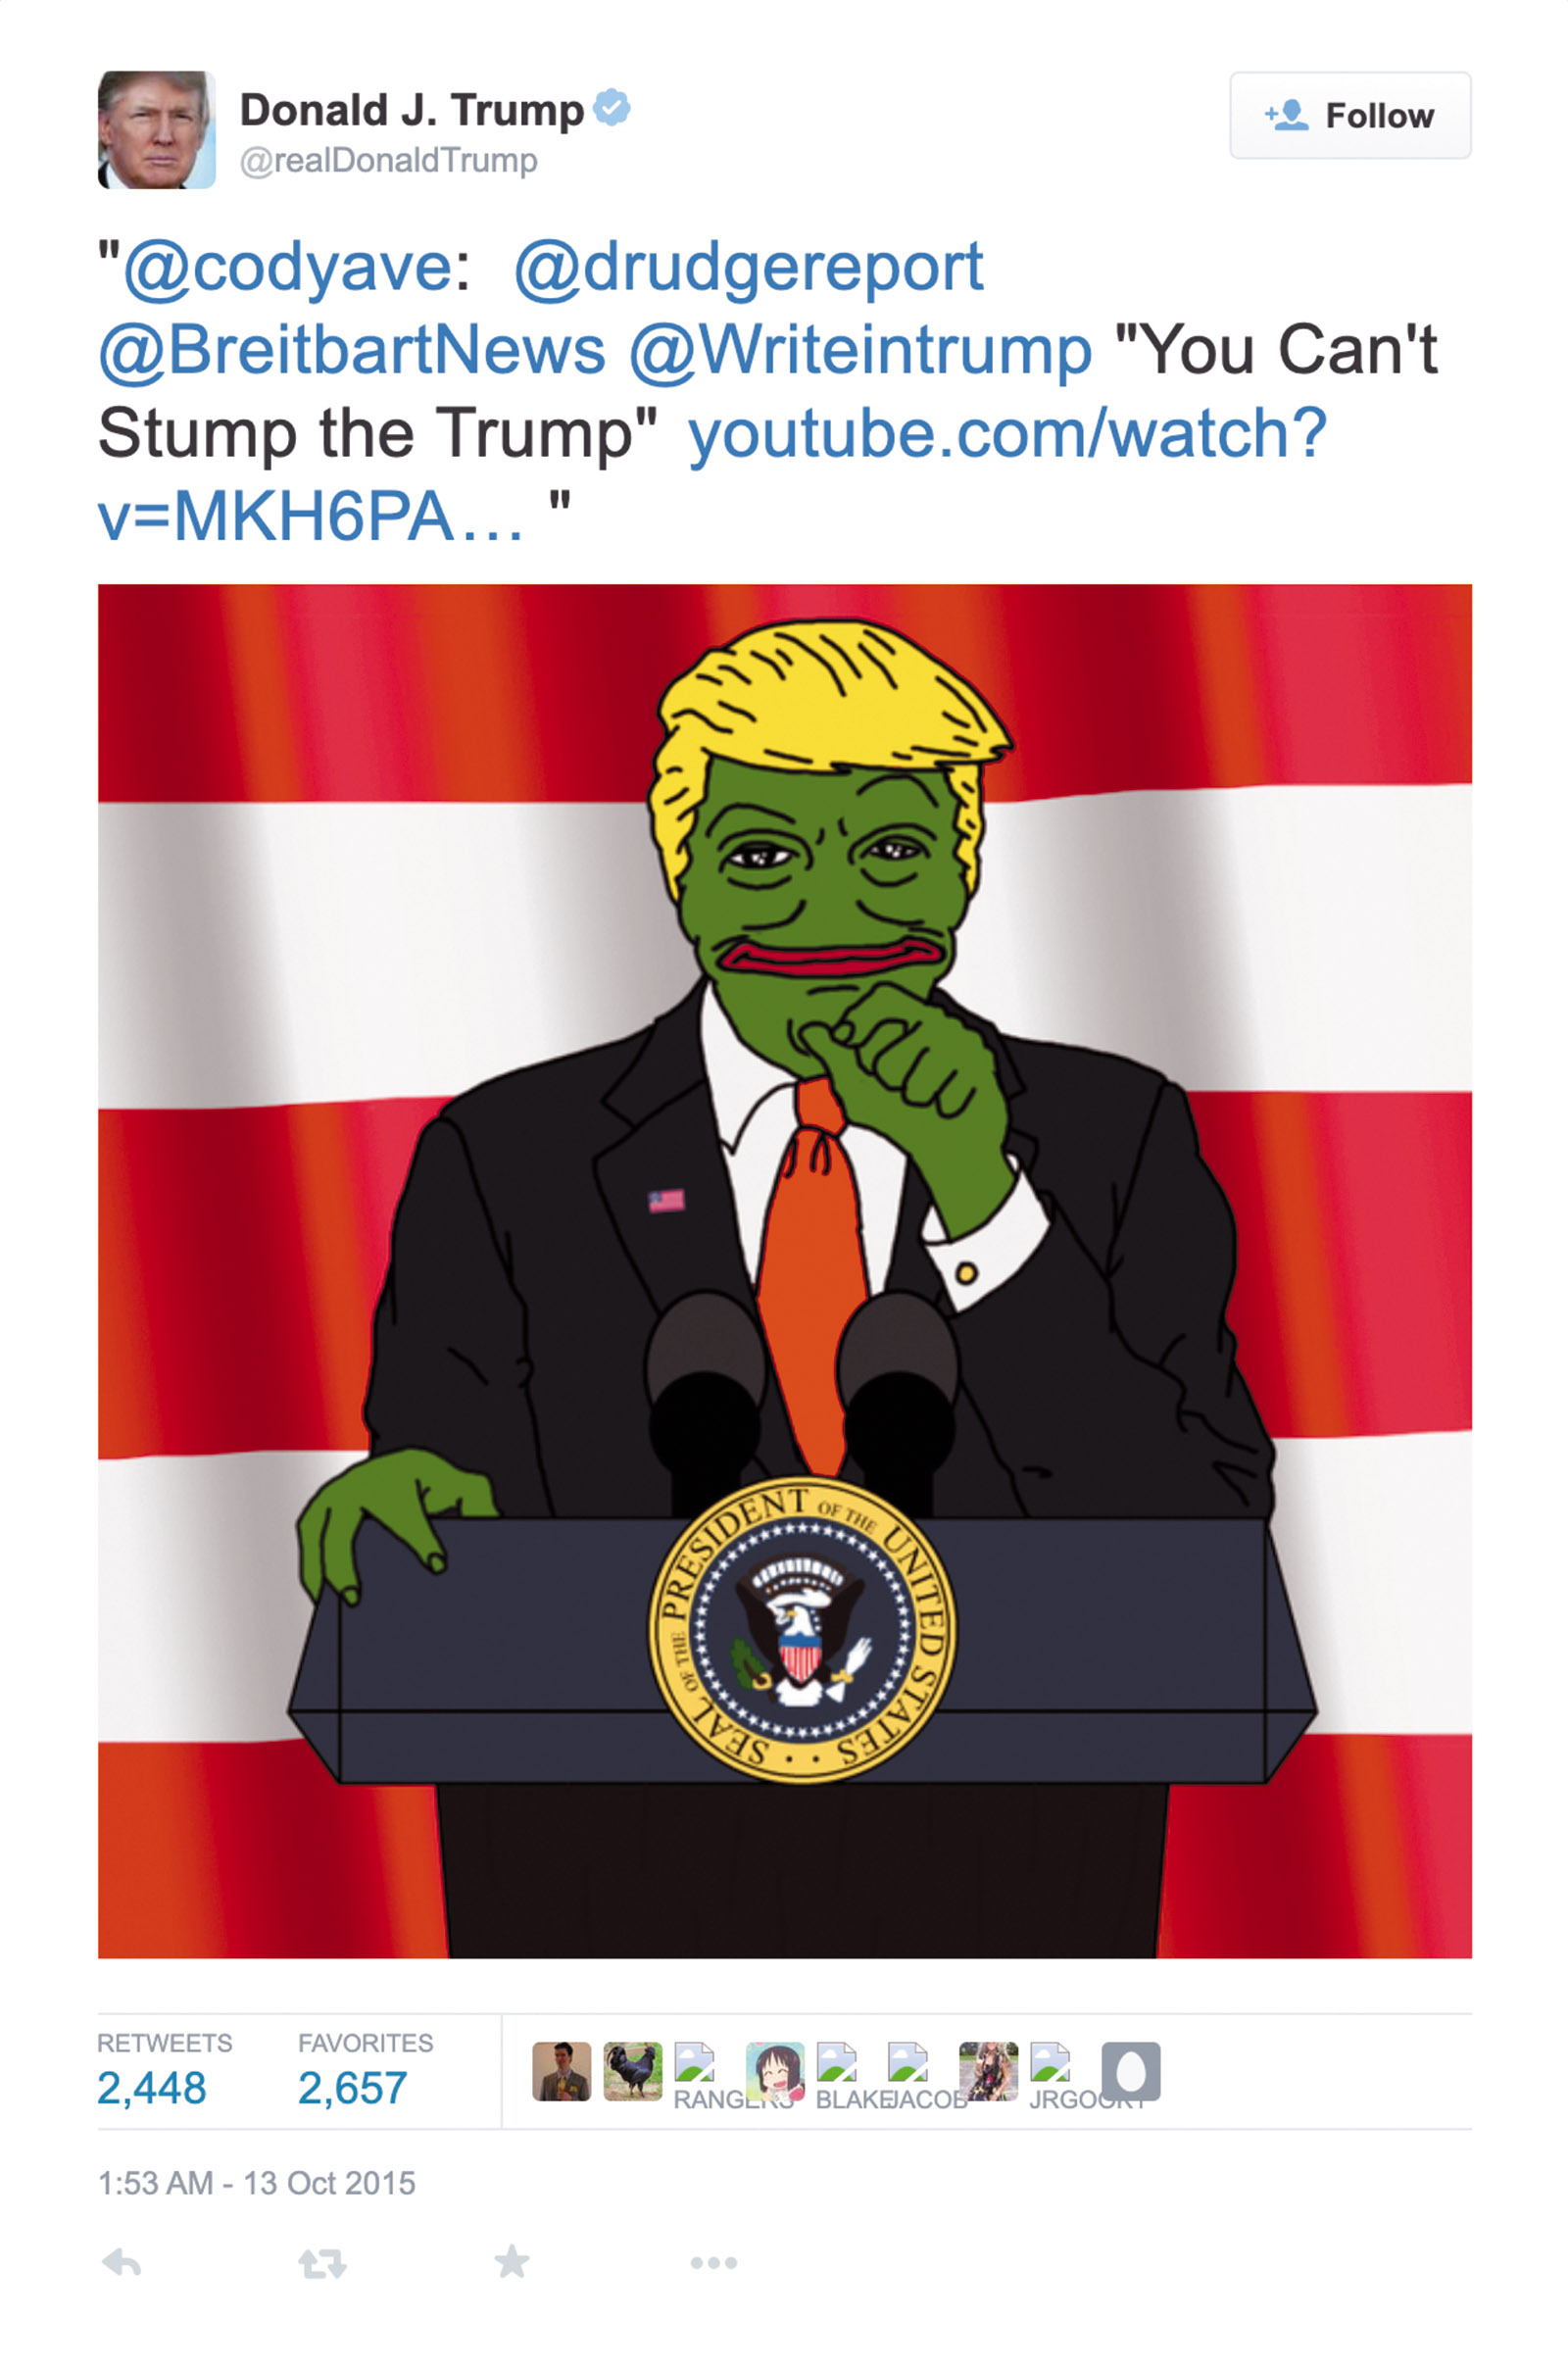 A tweet by Donald Trump featuring an image of himself as Pepe the Frog